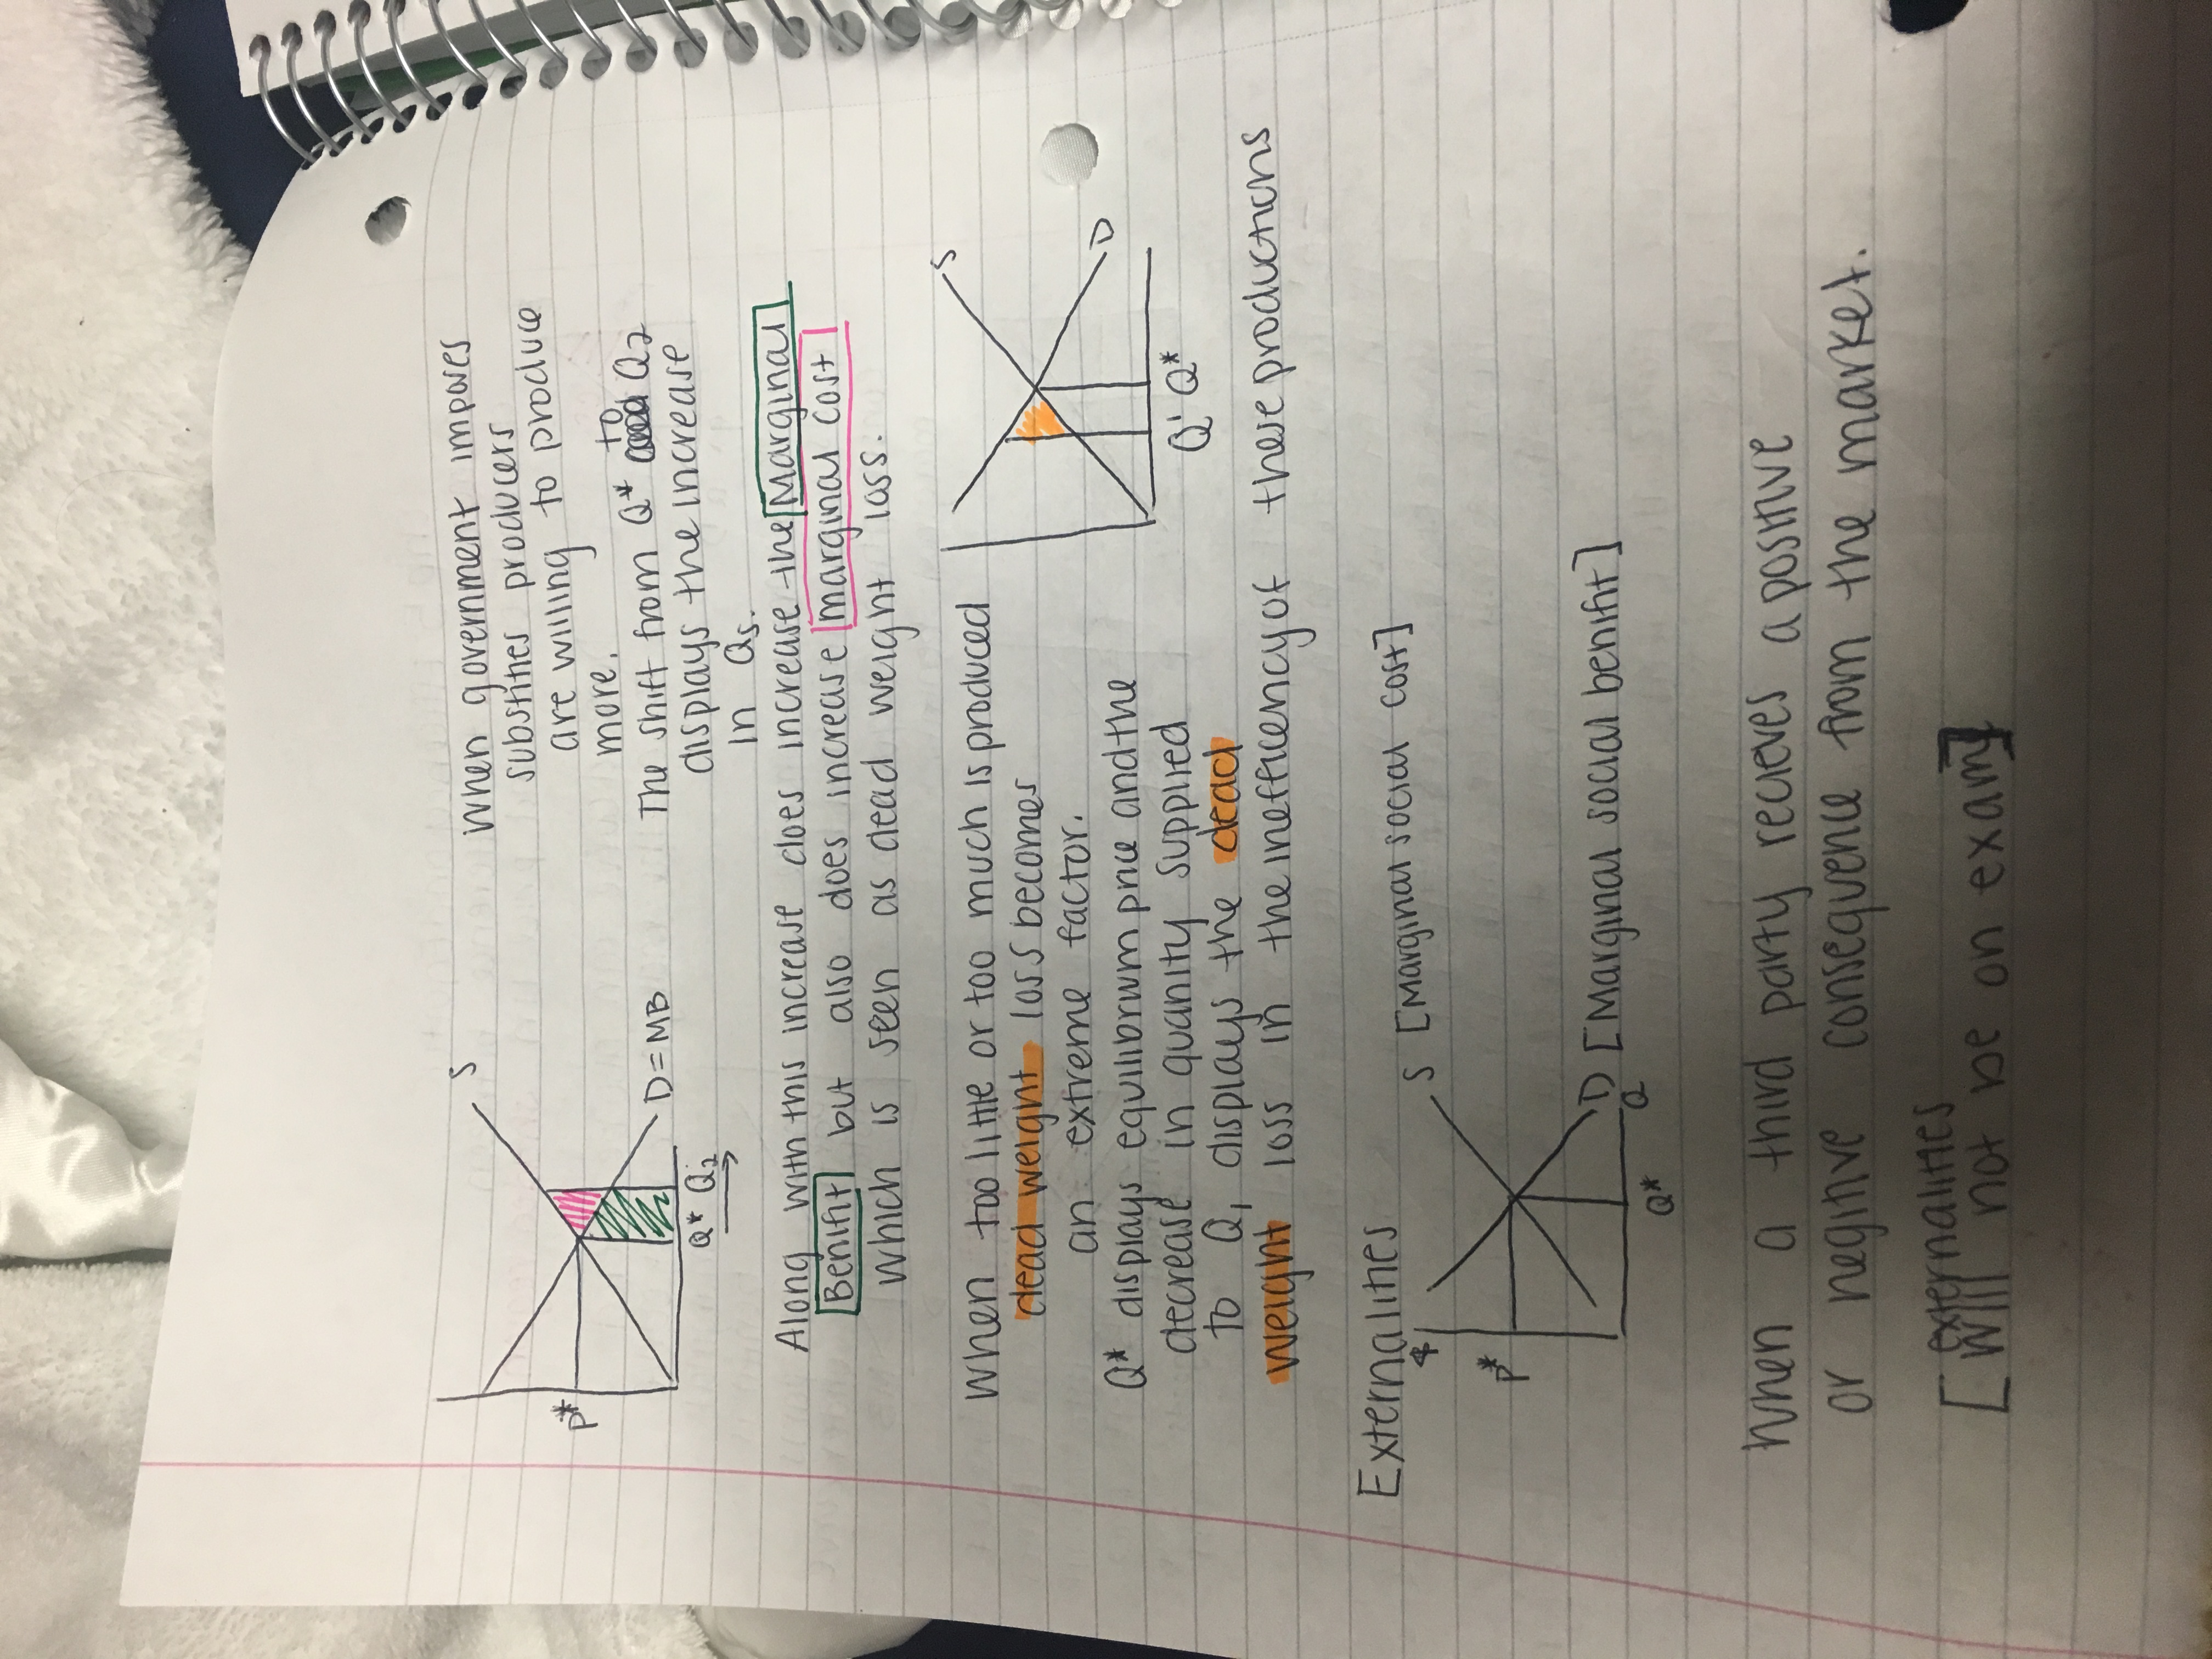 ECON 221 - Class Notes - Week 4